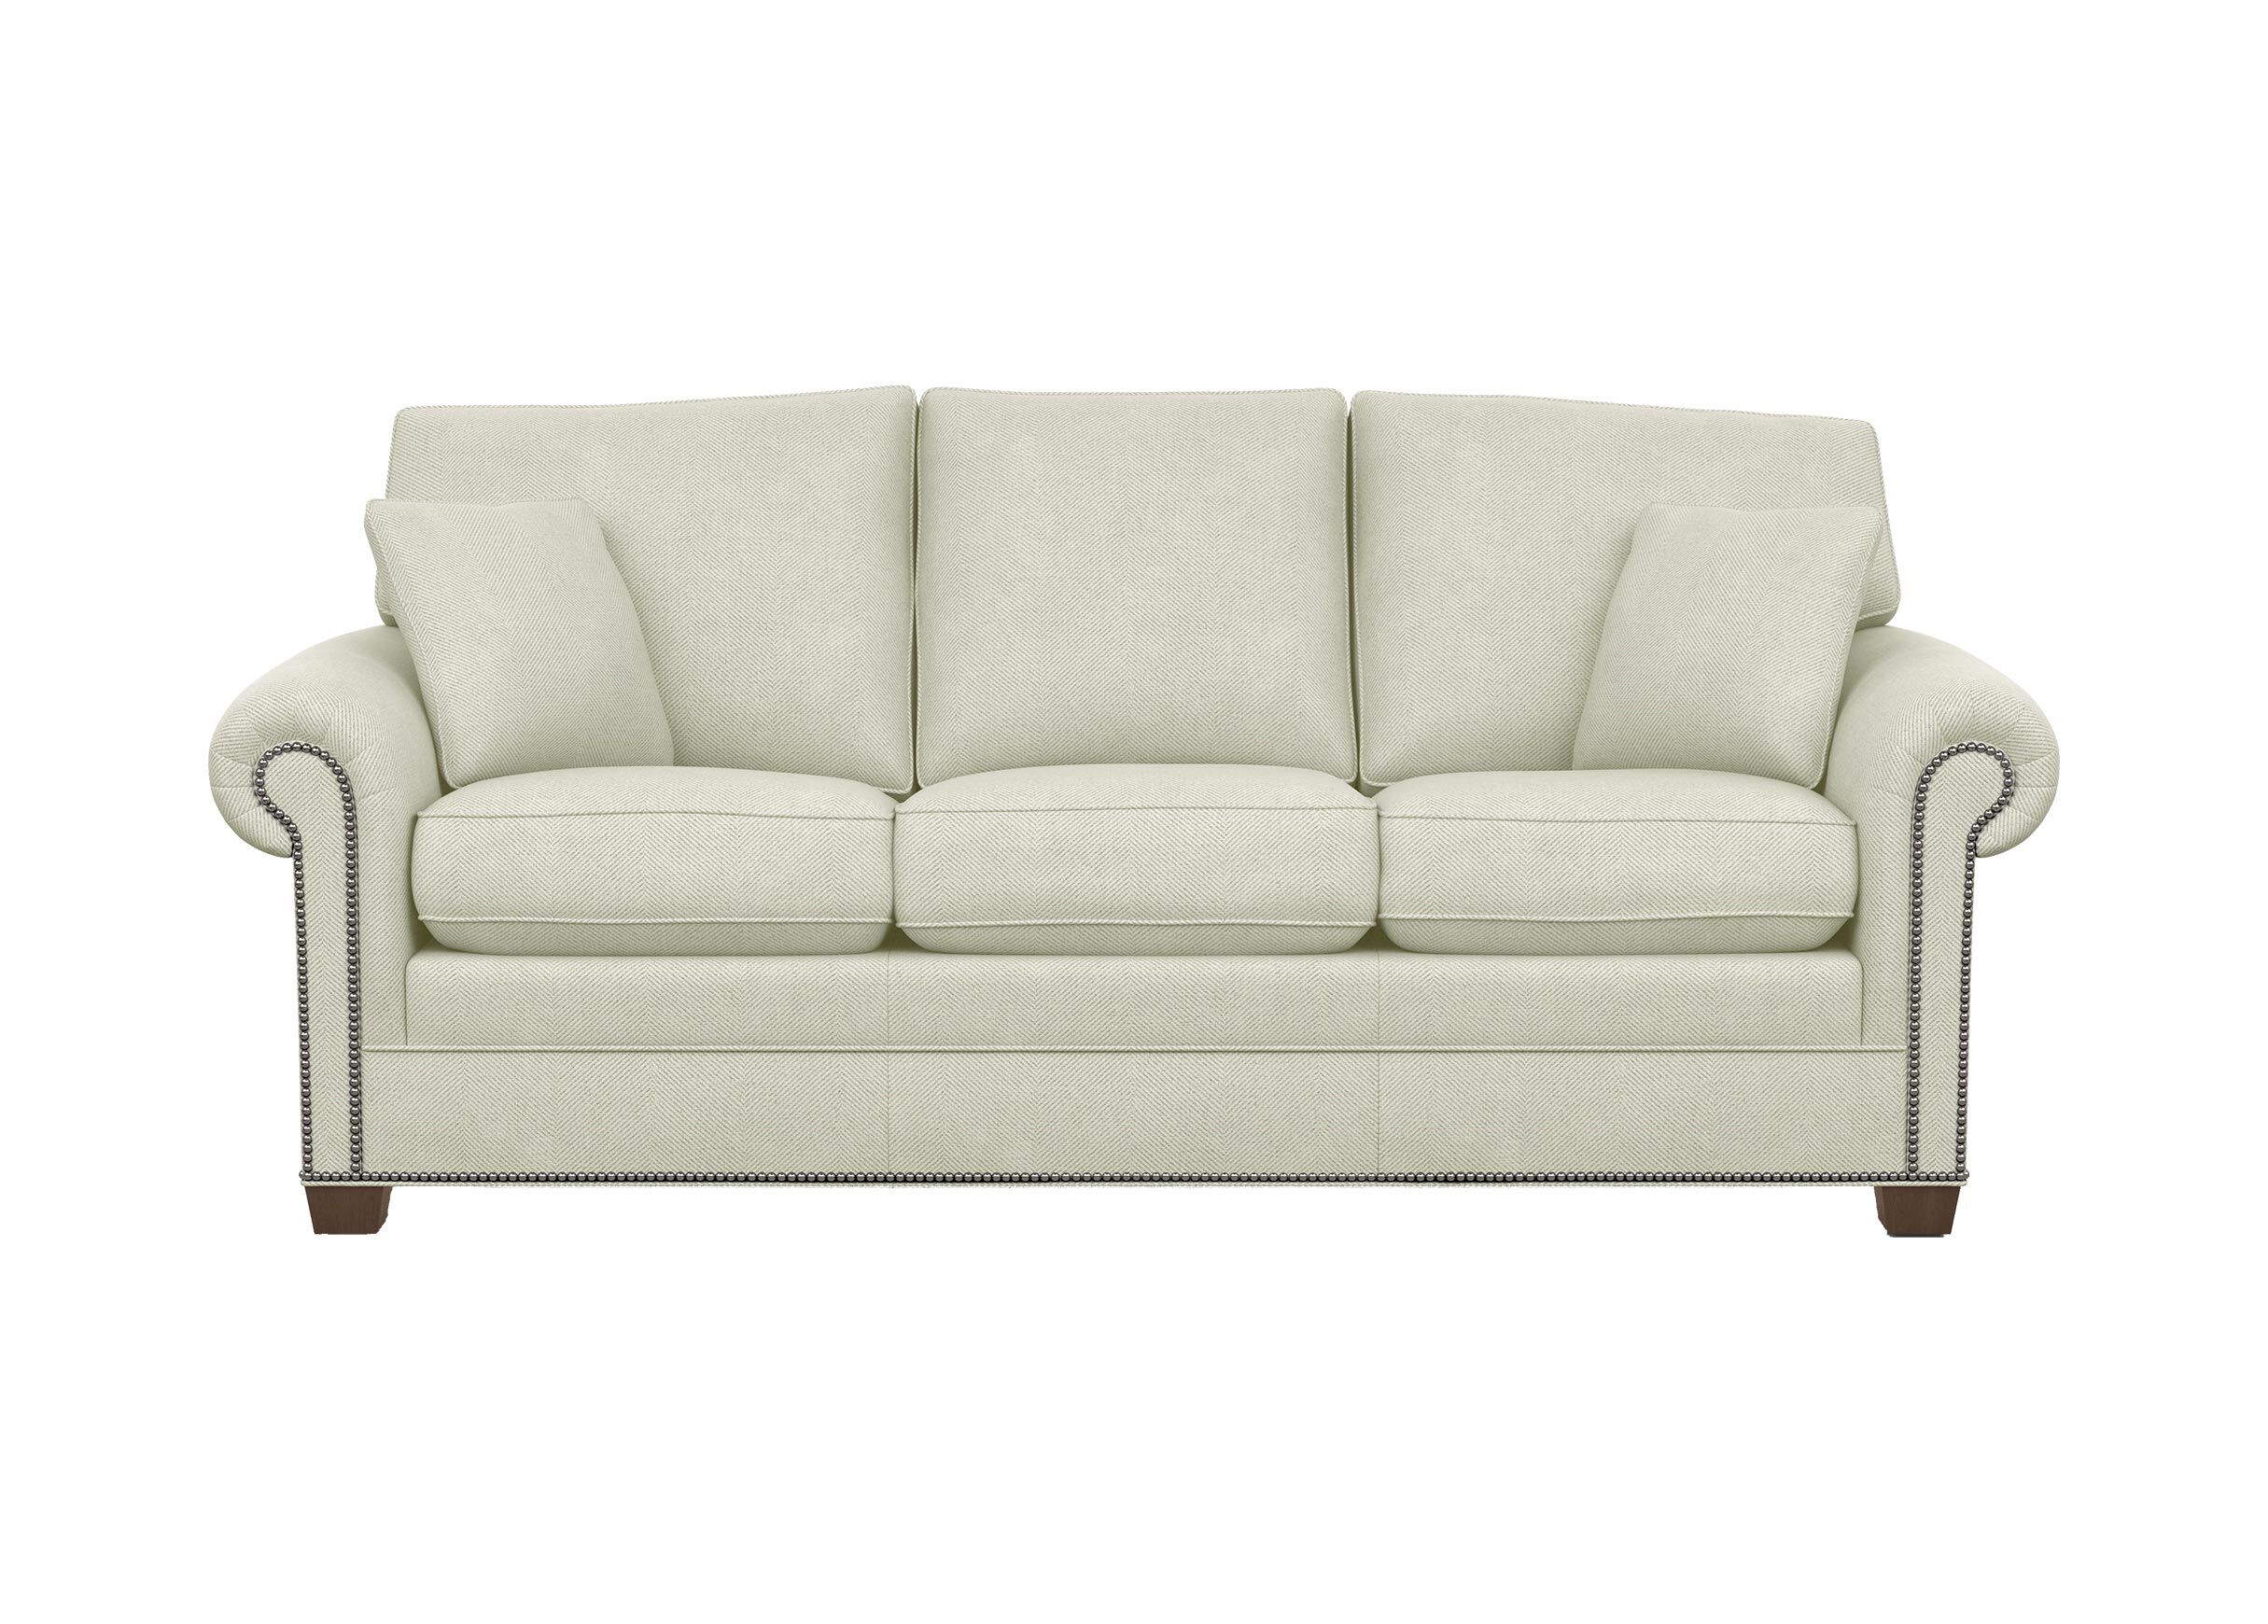 Sofa Queen Conor Queen Sleeper Sofa The Conor Collection Ethan Allen